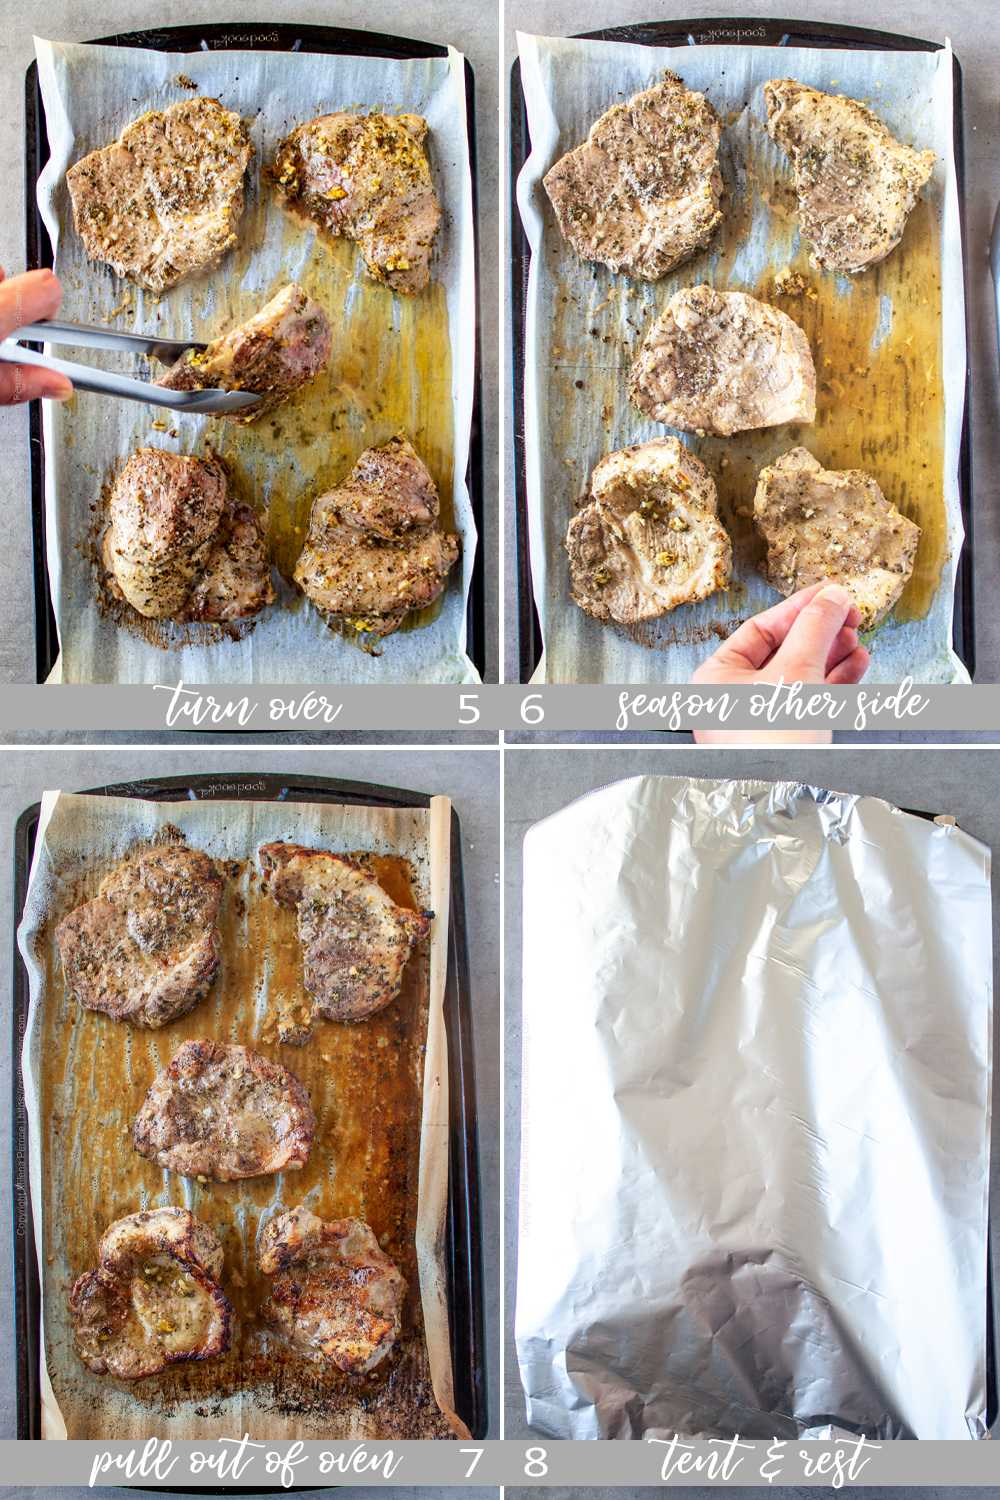 tep by step images showing how to prepare oven bake marinated pork chops. Part 2